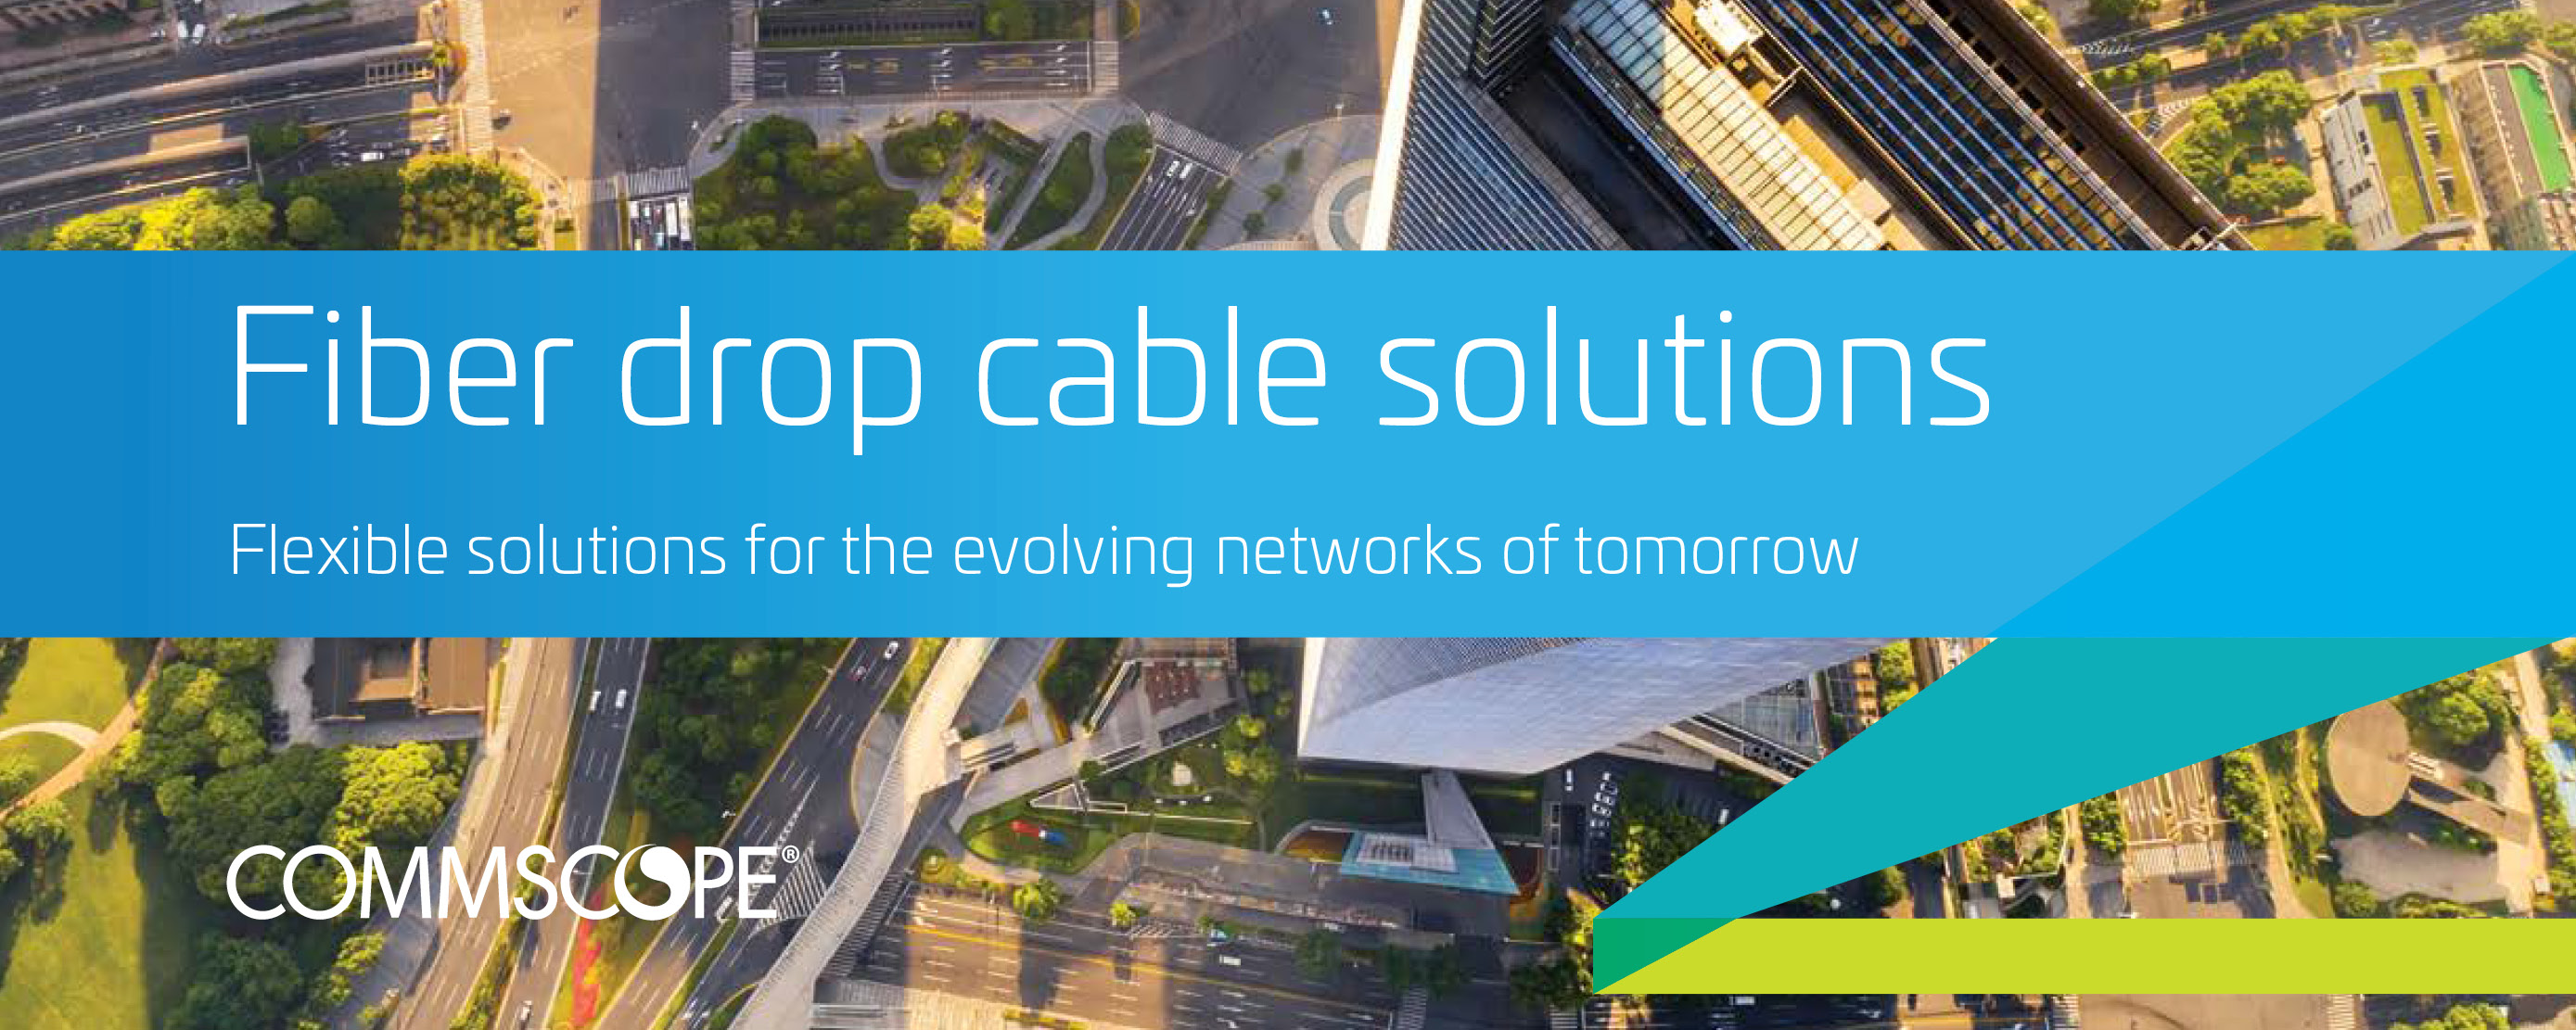 CommScope - Fiber Drop Cable Solutions